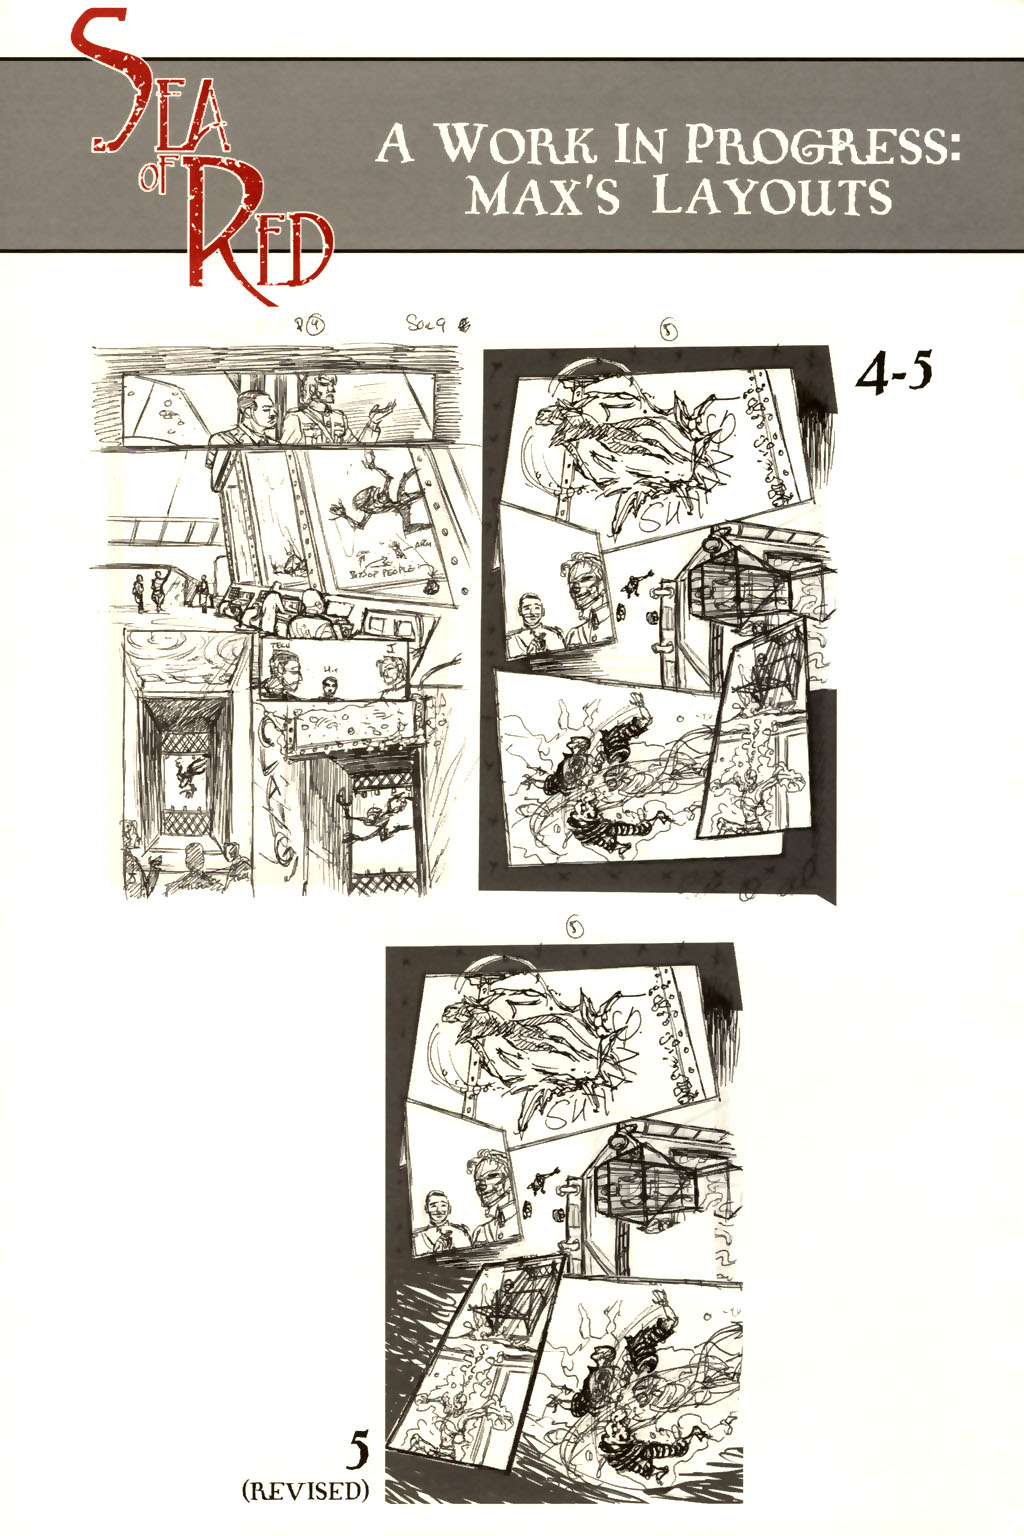 Read online Sea of Red comic -  Issue #9 - 27